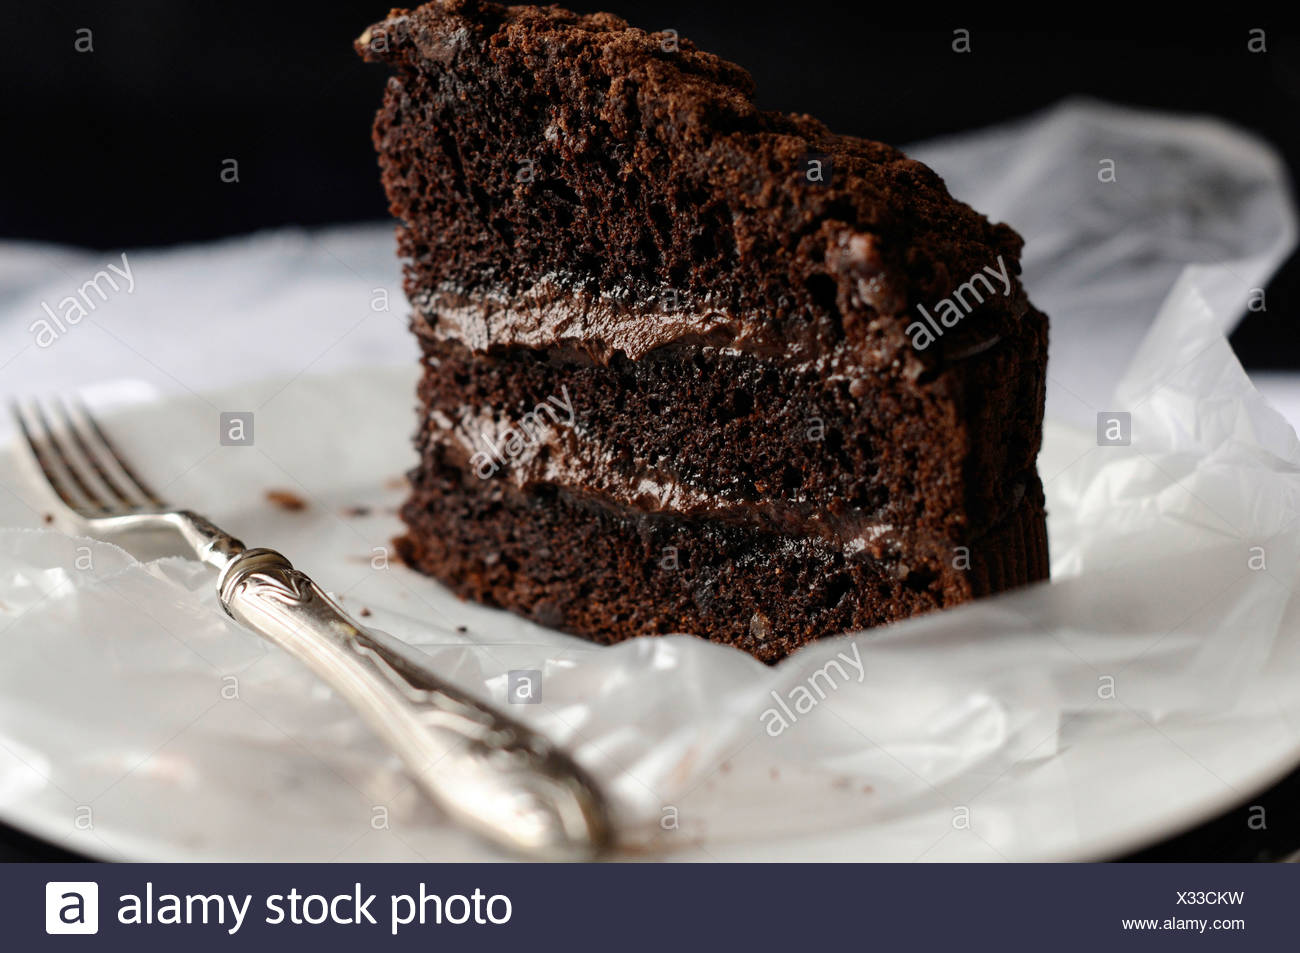 Chocolate fudge cake with silver fork - Stock Image